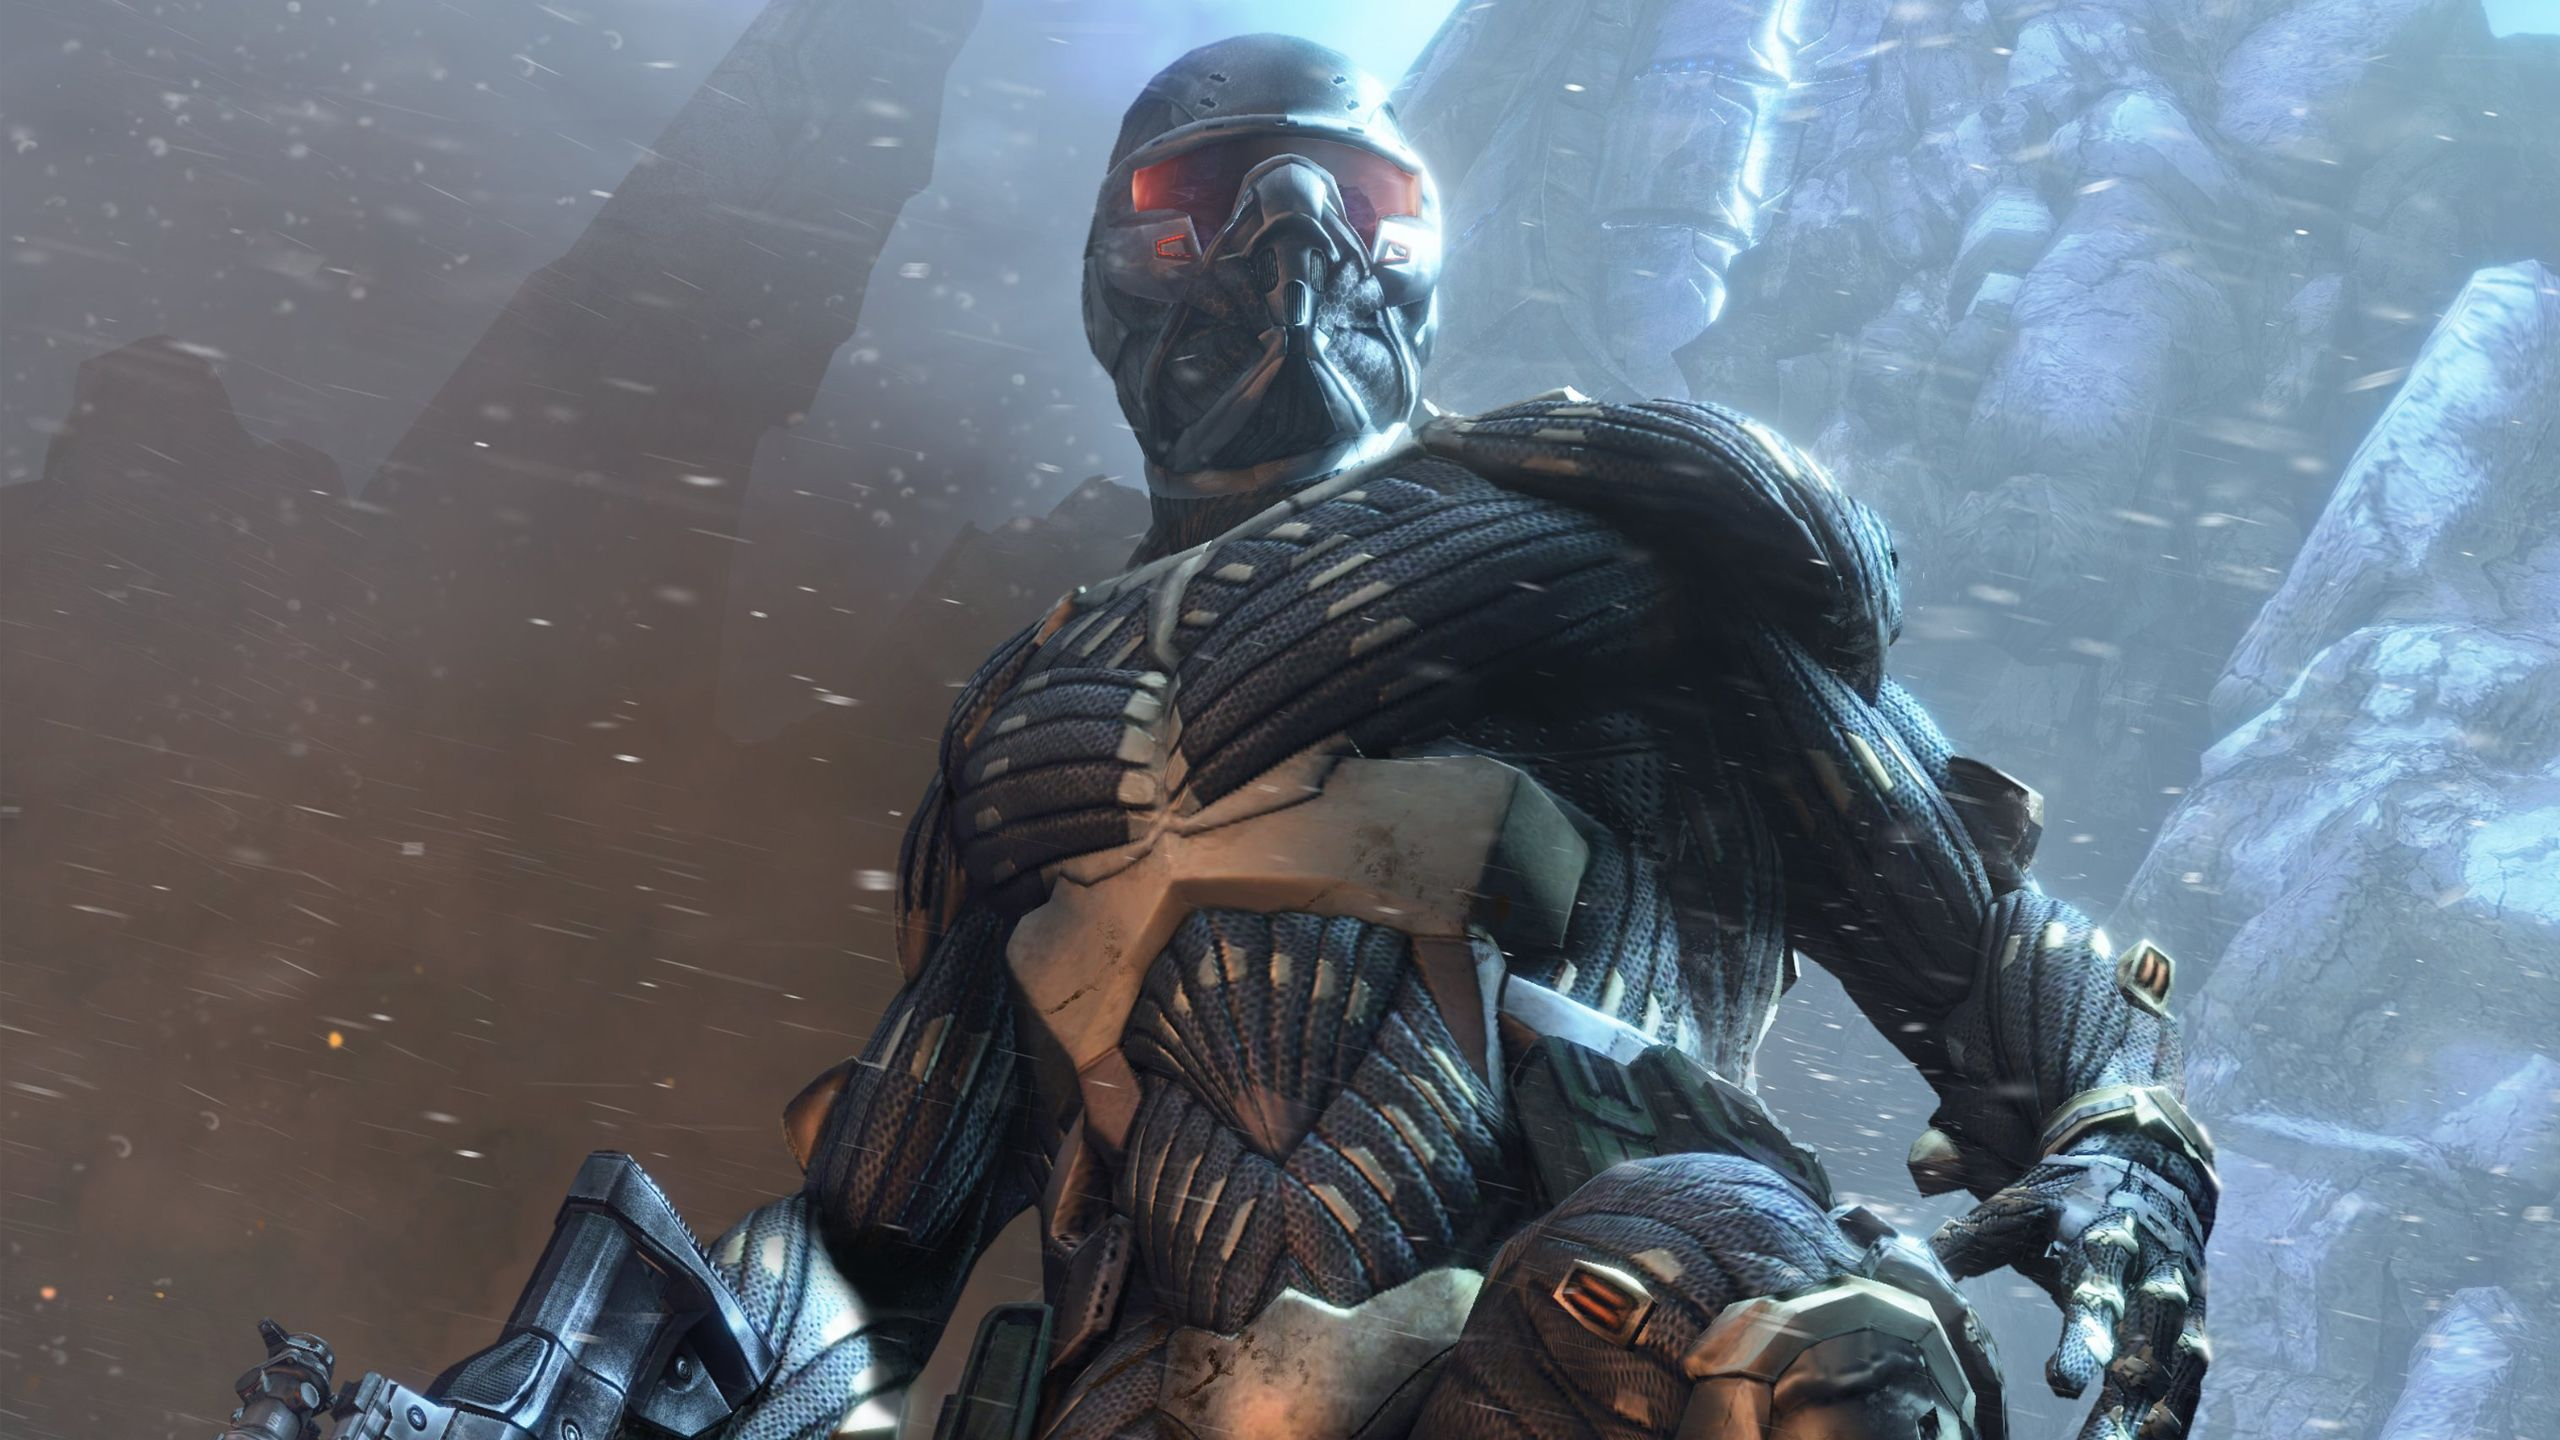 crysis wallpaper Crysis Character wallpaper, Predator